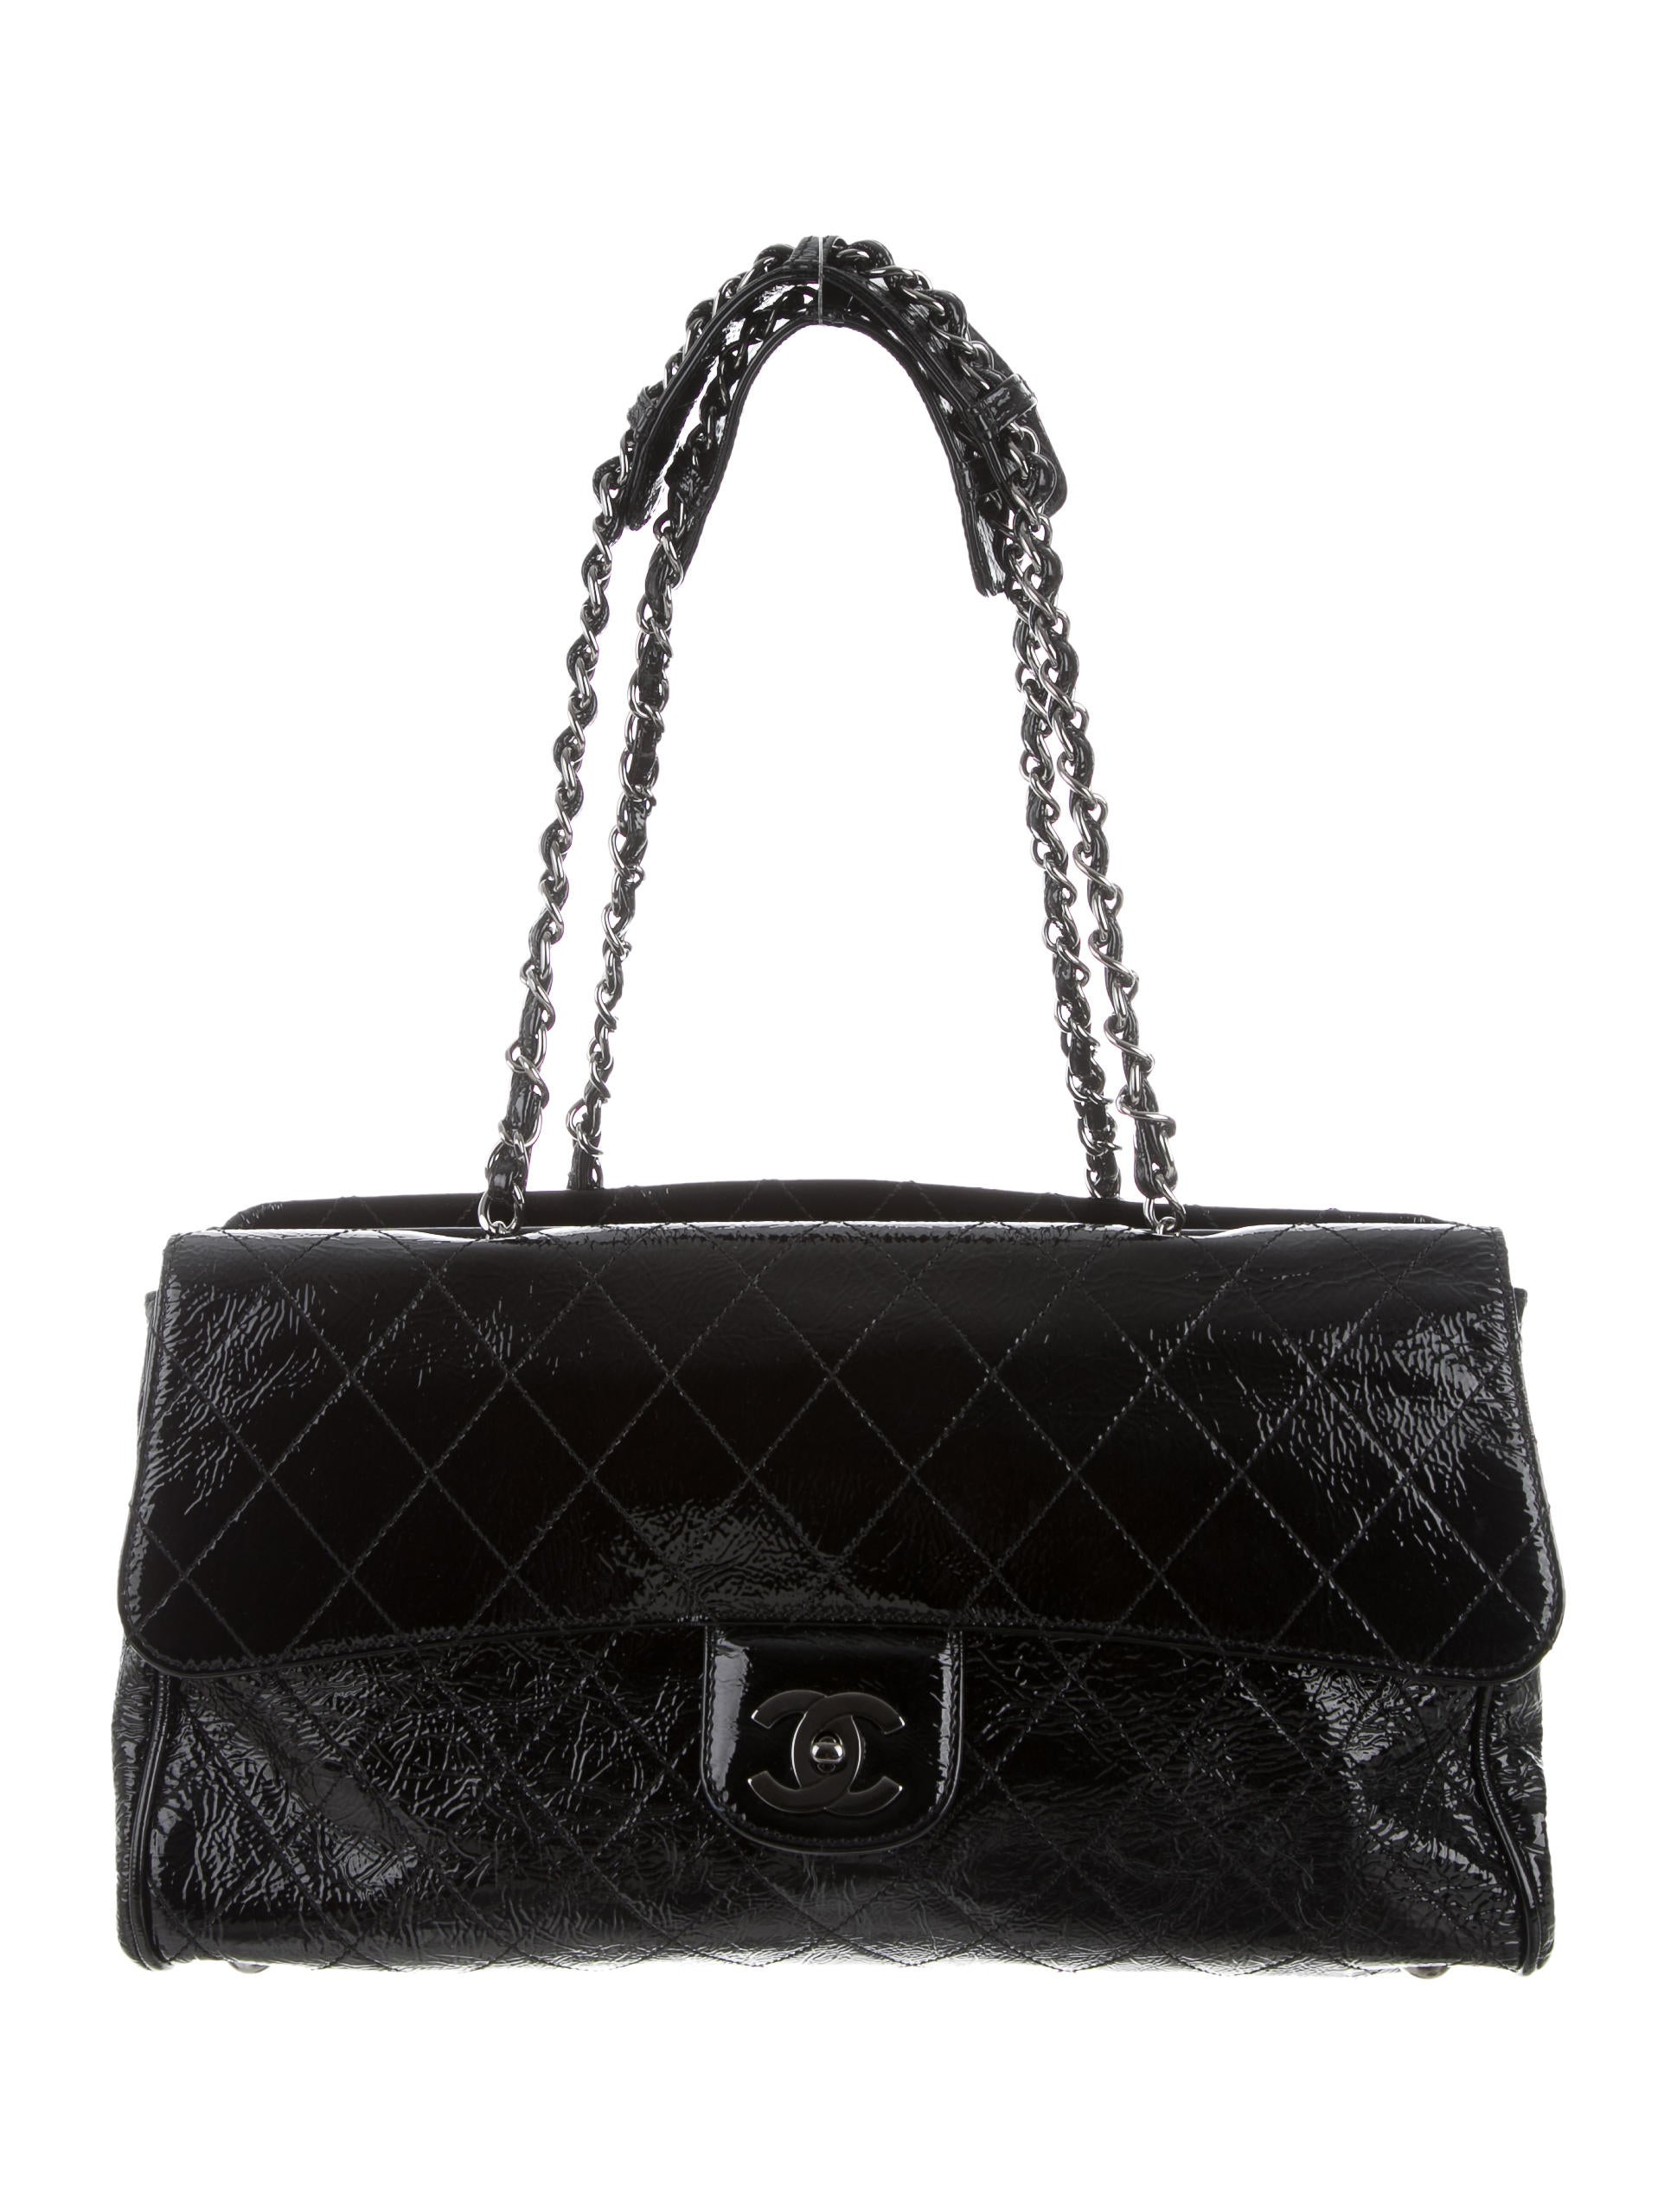 5f1b0869698b Chanel Patent Leather Flap Bag | Stanford Center for Opportunity ...